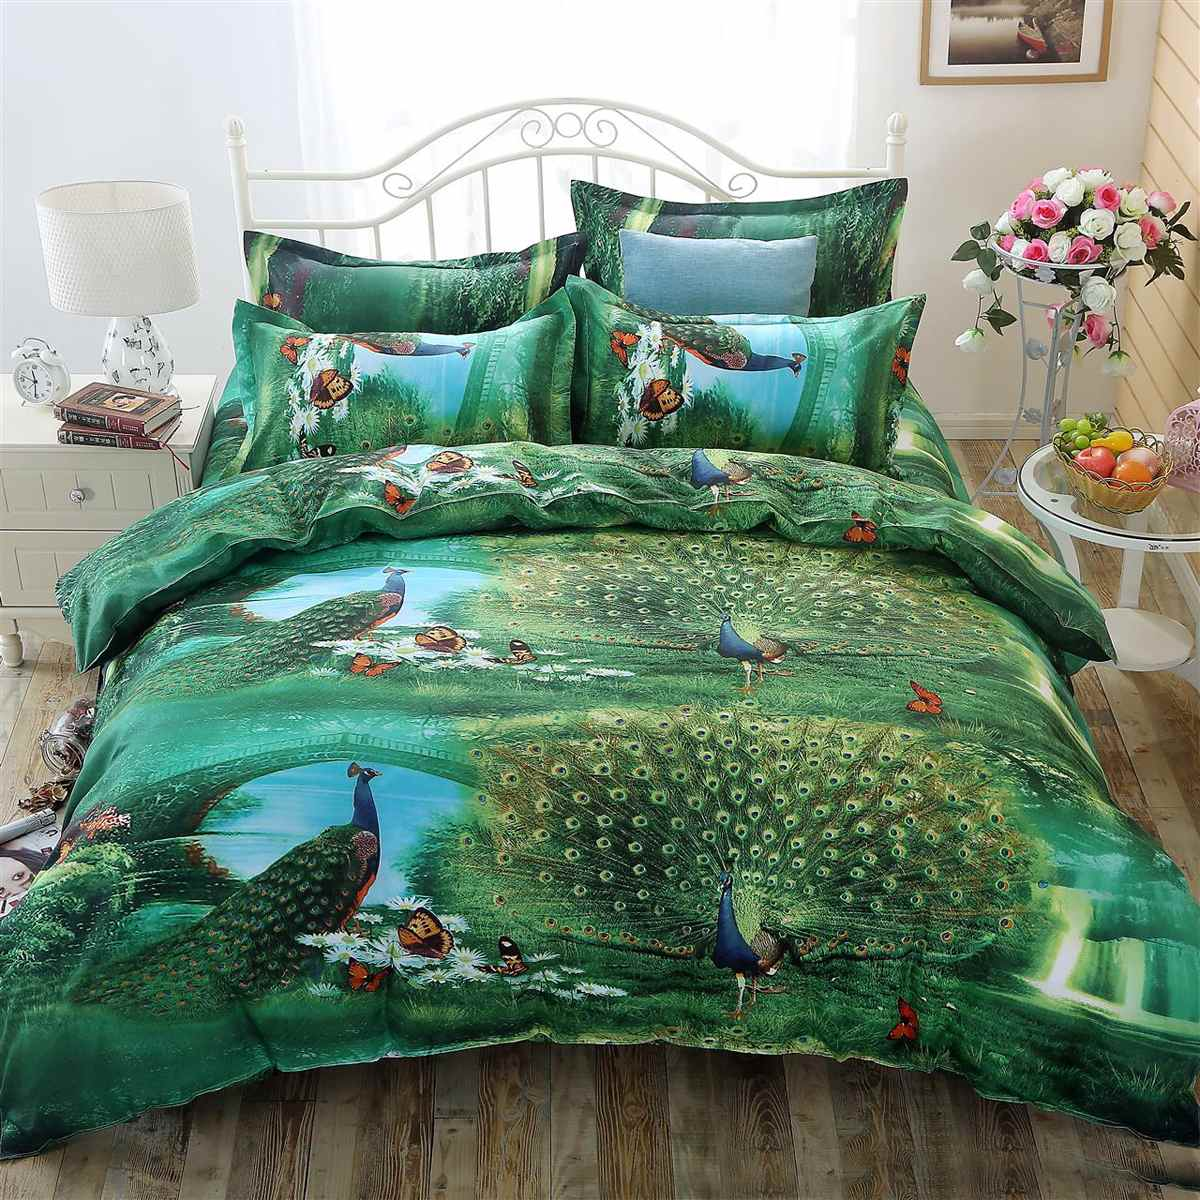 4pcs Bedding Set Luxury 3D Peacock Cotton Bedding Sets Bed Sheet Duvet Cover Pillowcase Cover Set King Queen Size Bedspread